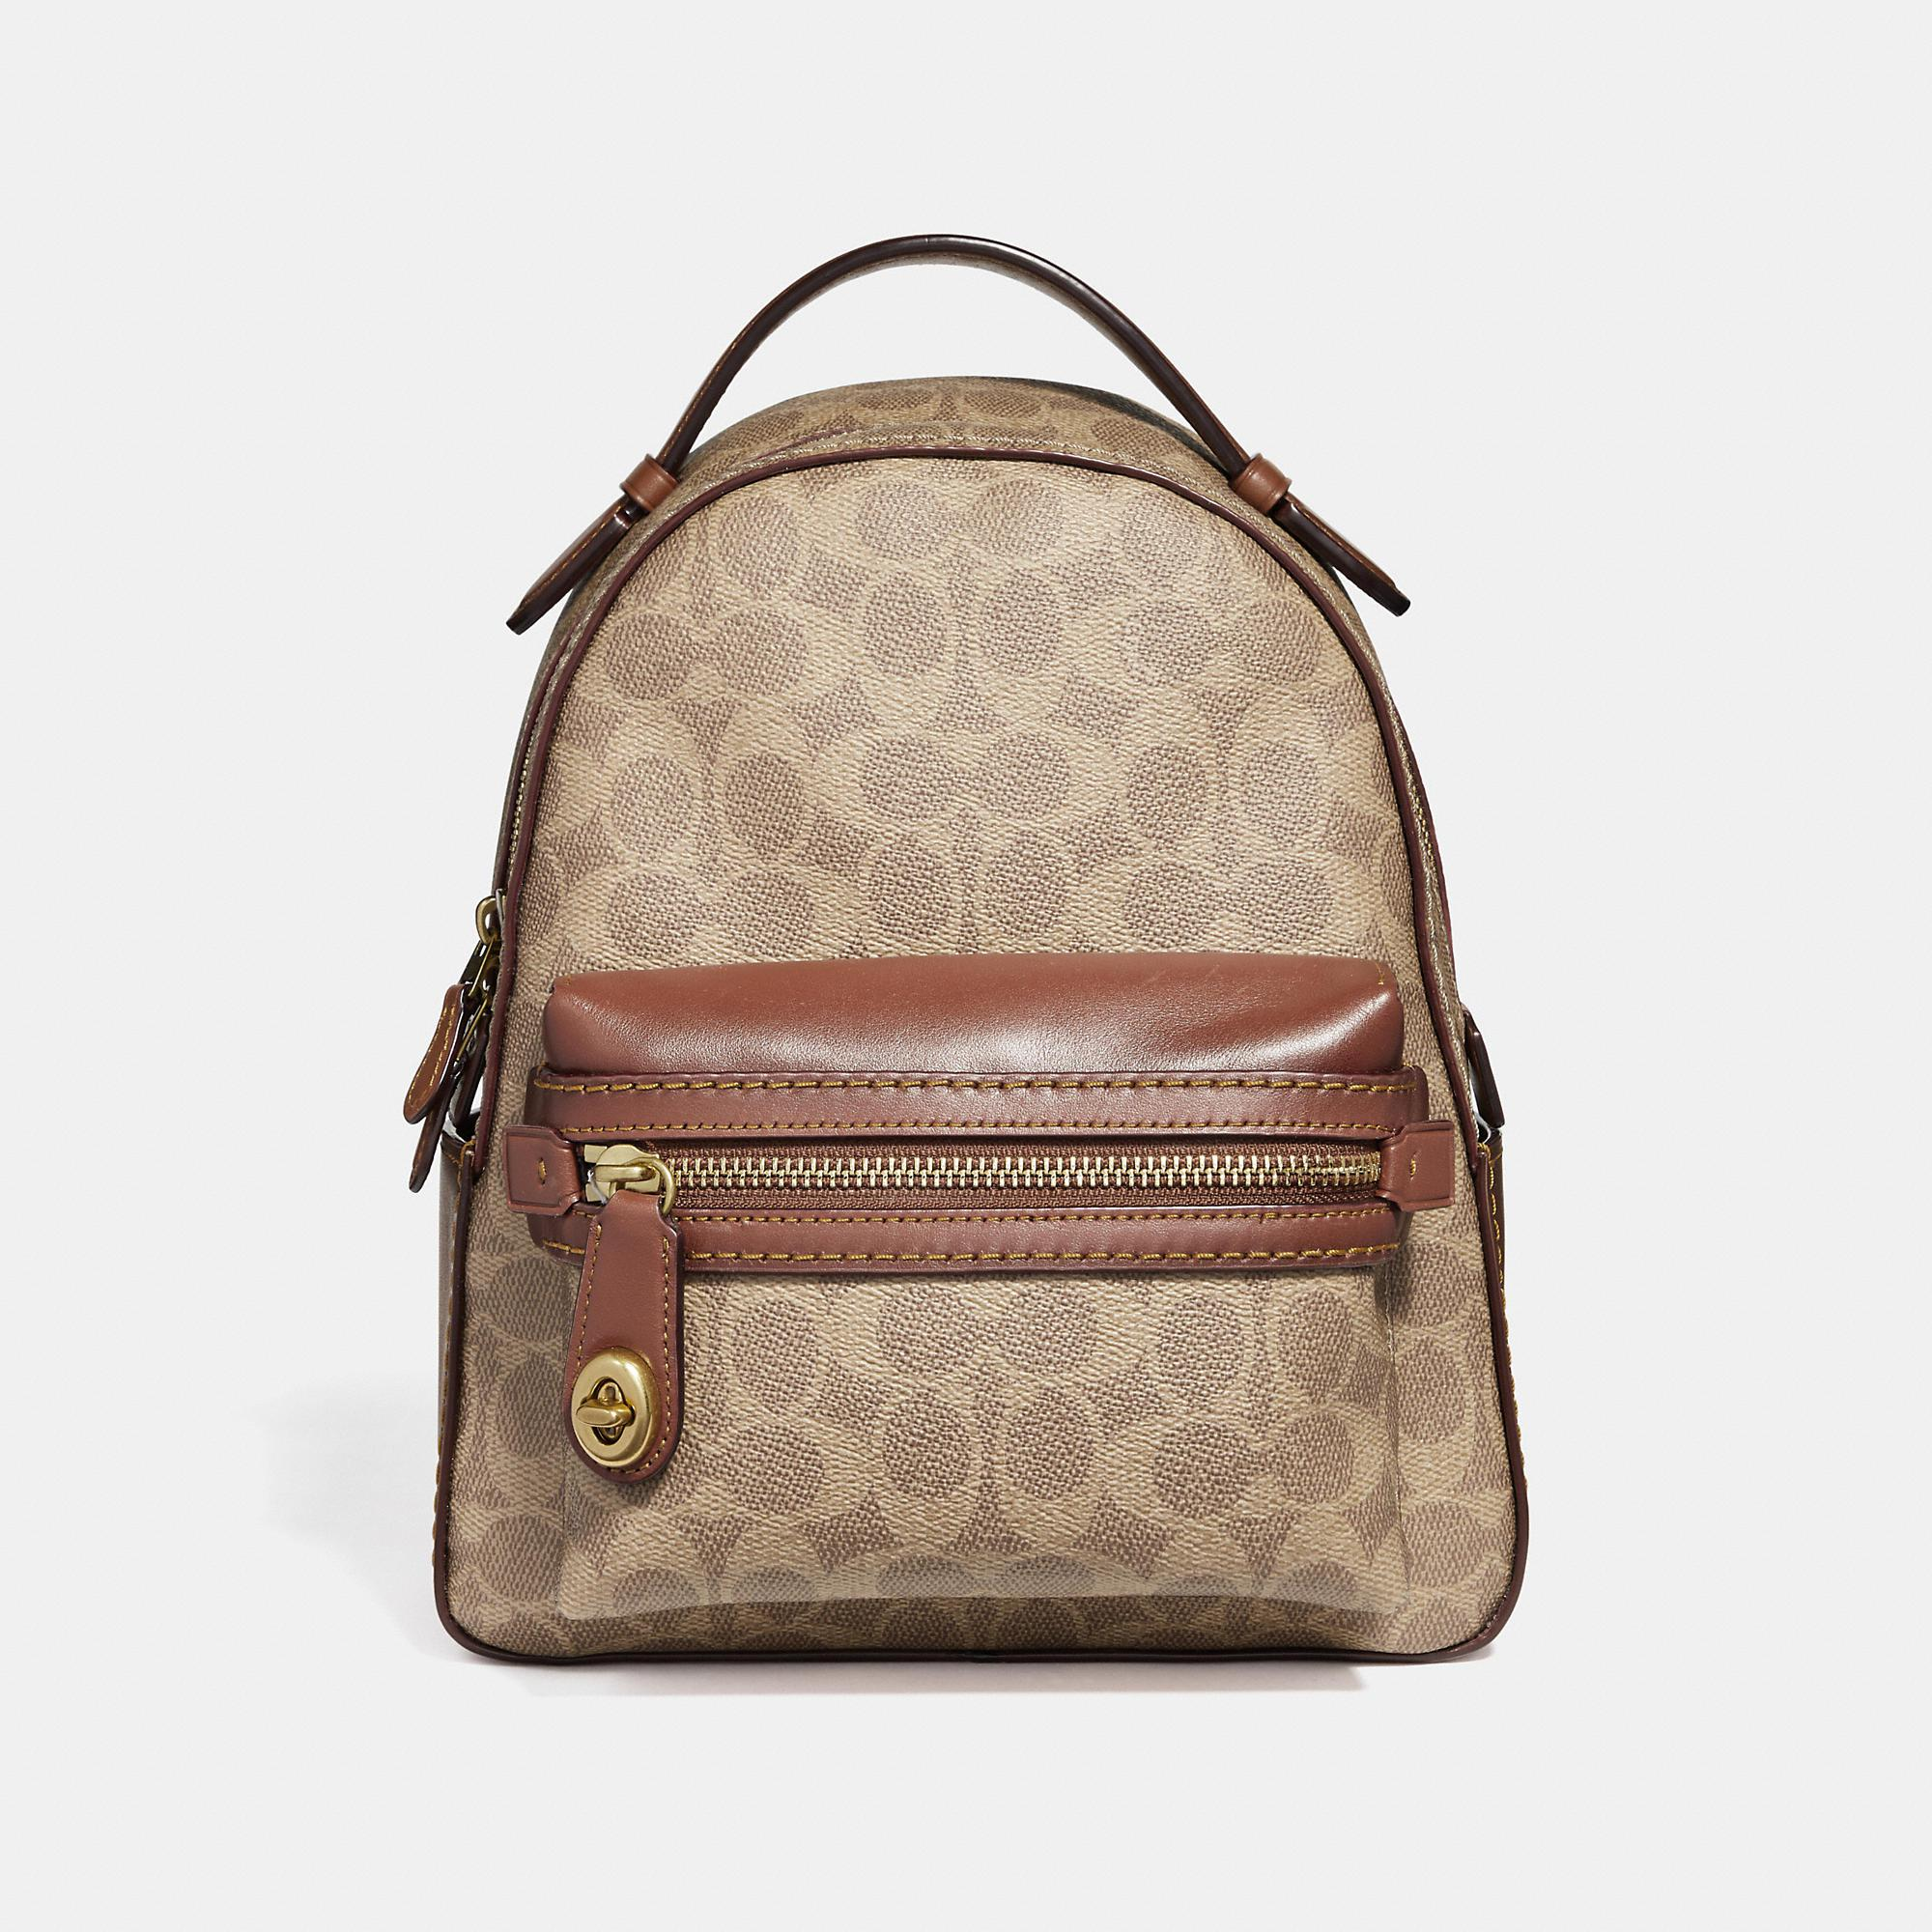 0c572048e8c94 Lyst - COACH Campus Backpack 23 In Signature Canvas in Brown